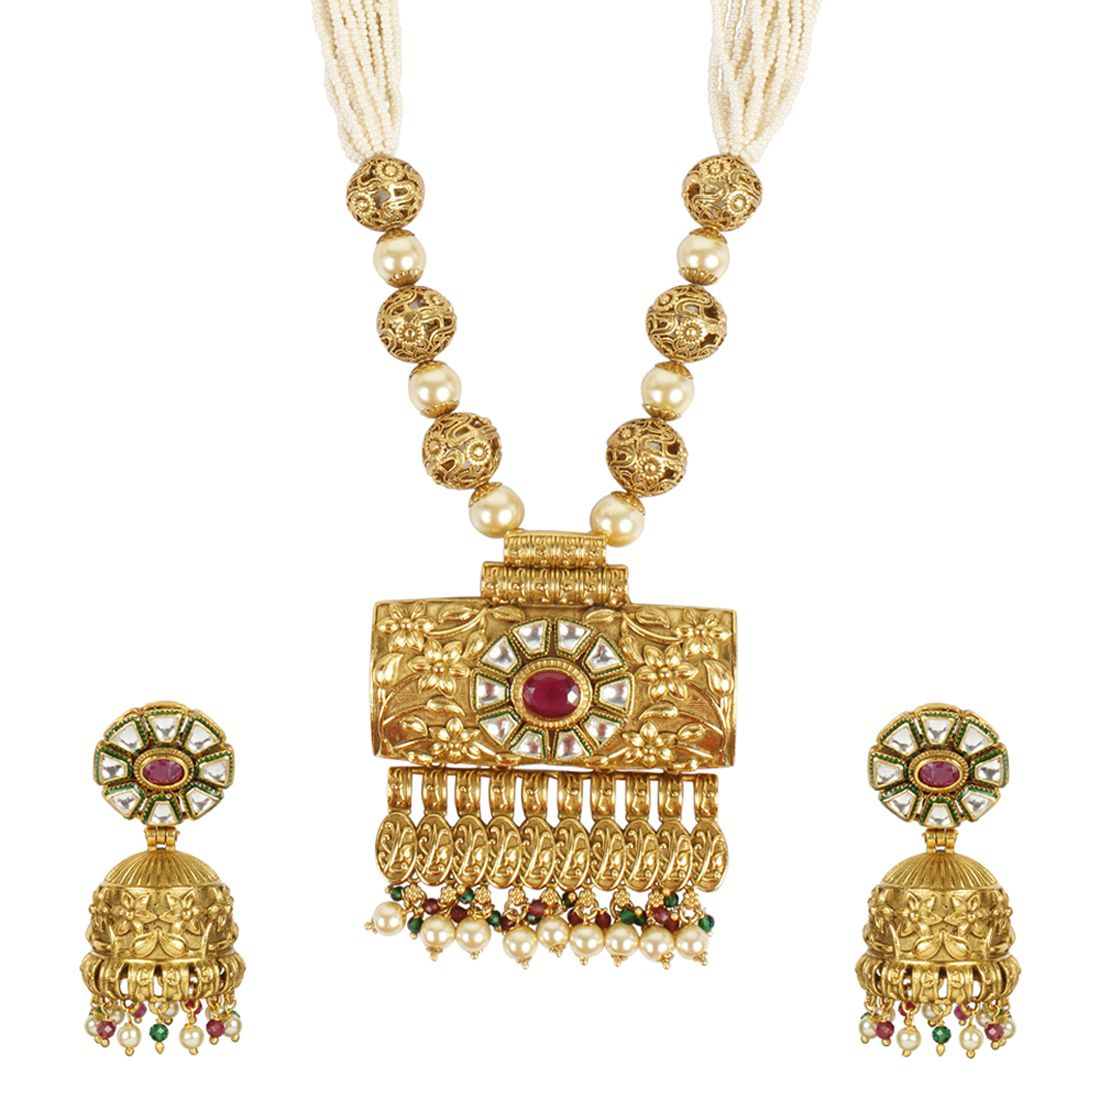 MUCH MORE Gorgeous Designer Gold Plated Polki Necklace Traditional Party wear Jewellery for Women's